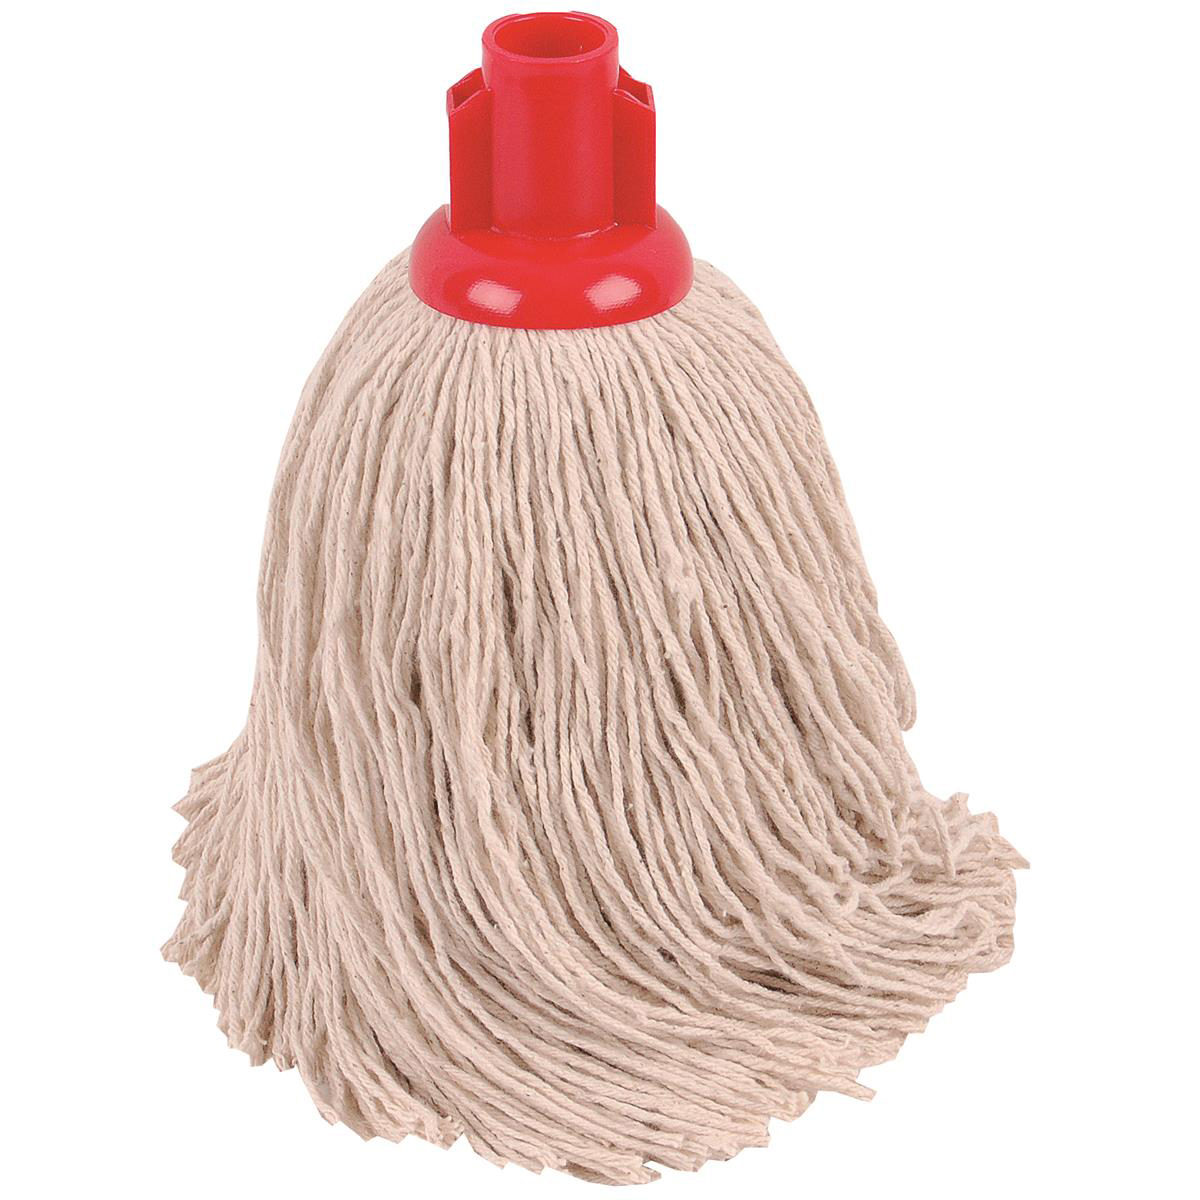 Robert Scott & Sons Twine Socket Mop for Rough Surfaces 16oz Red Ref 101858RED [Pack 10]